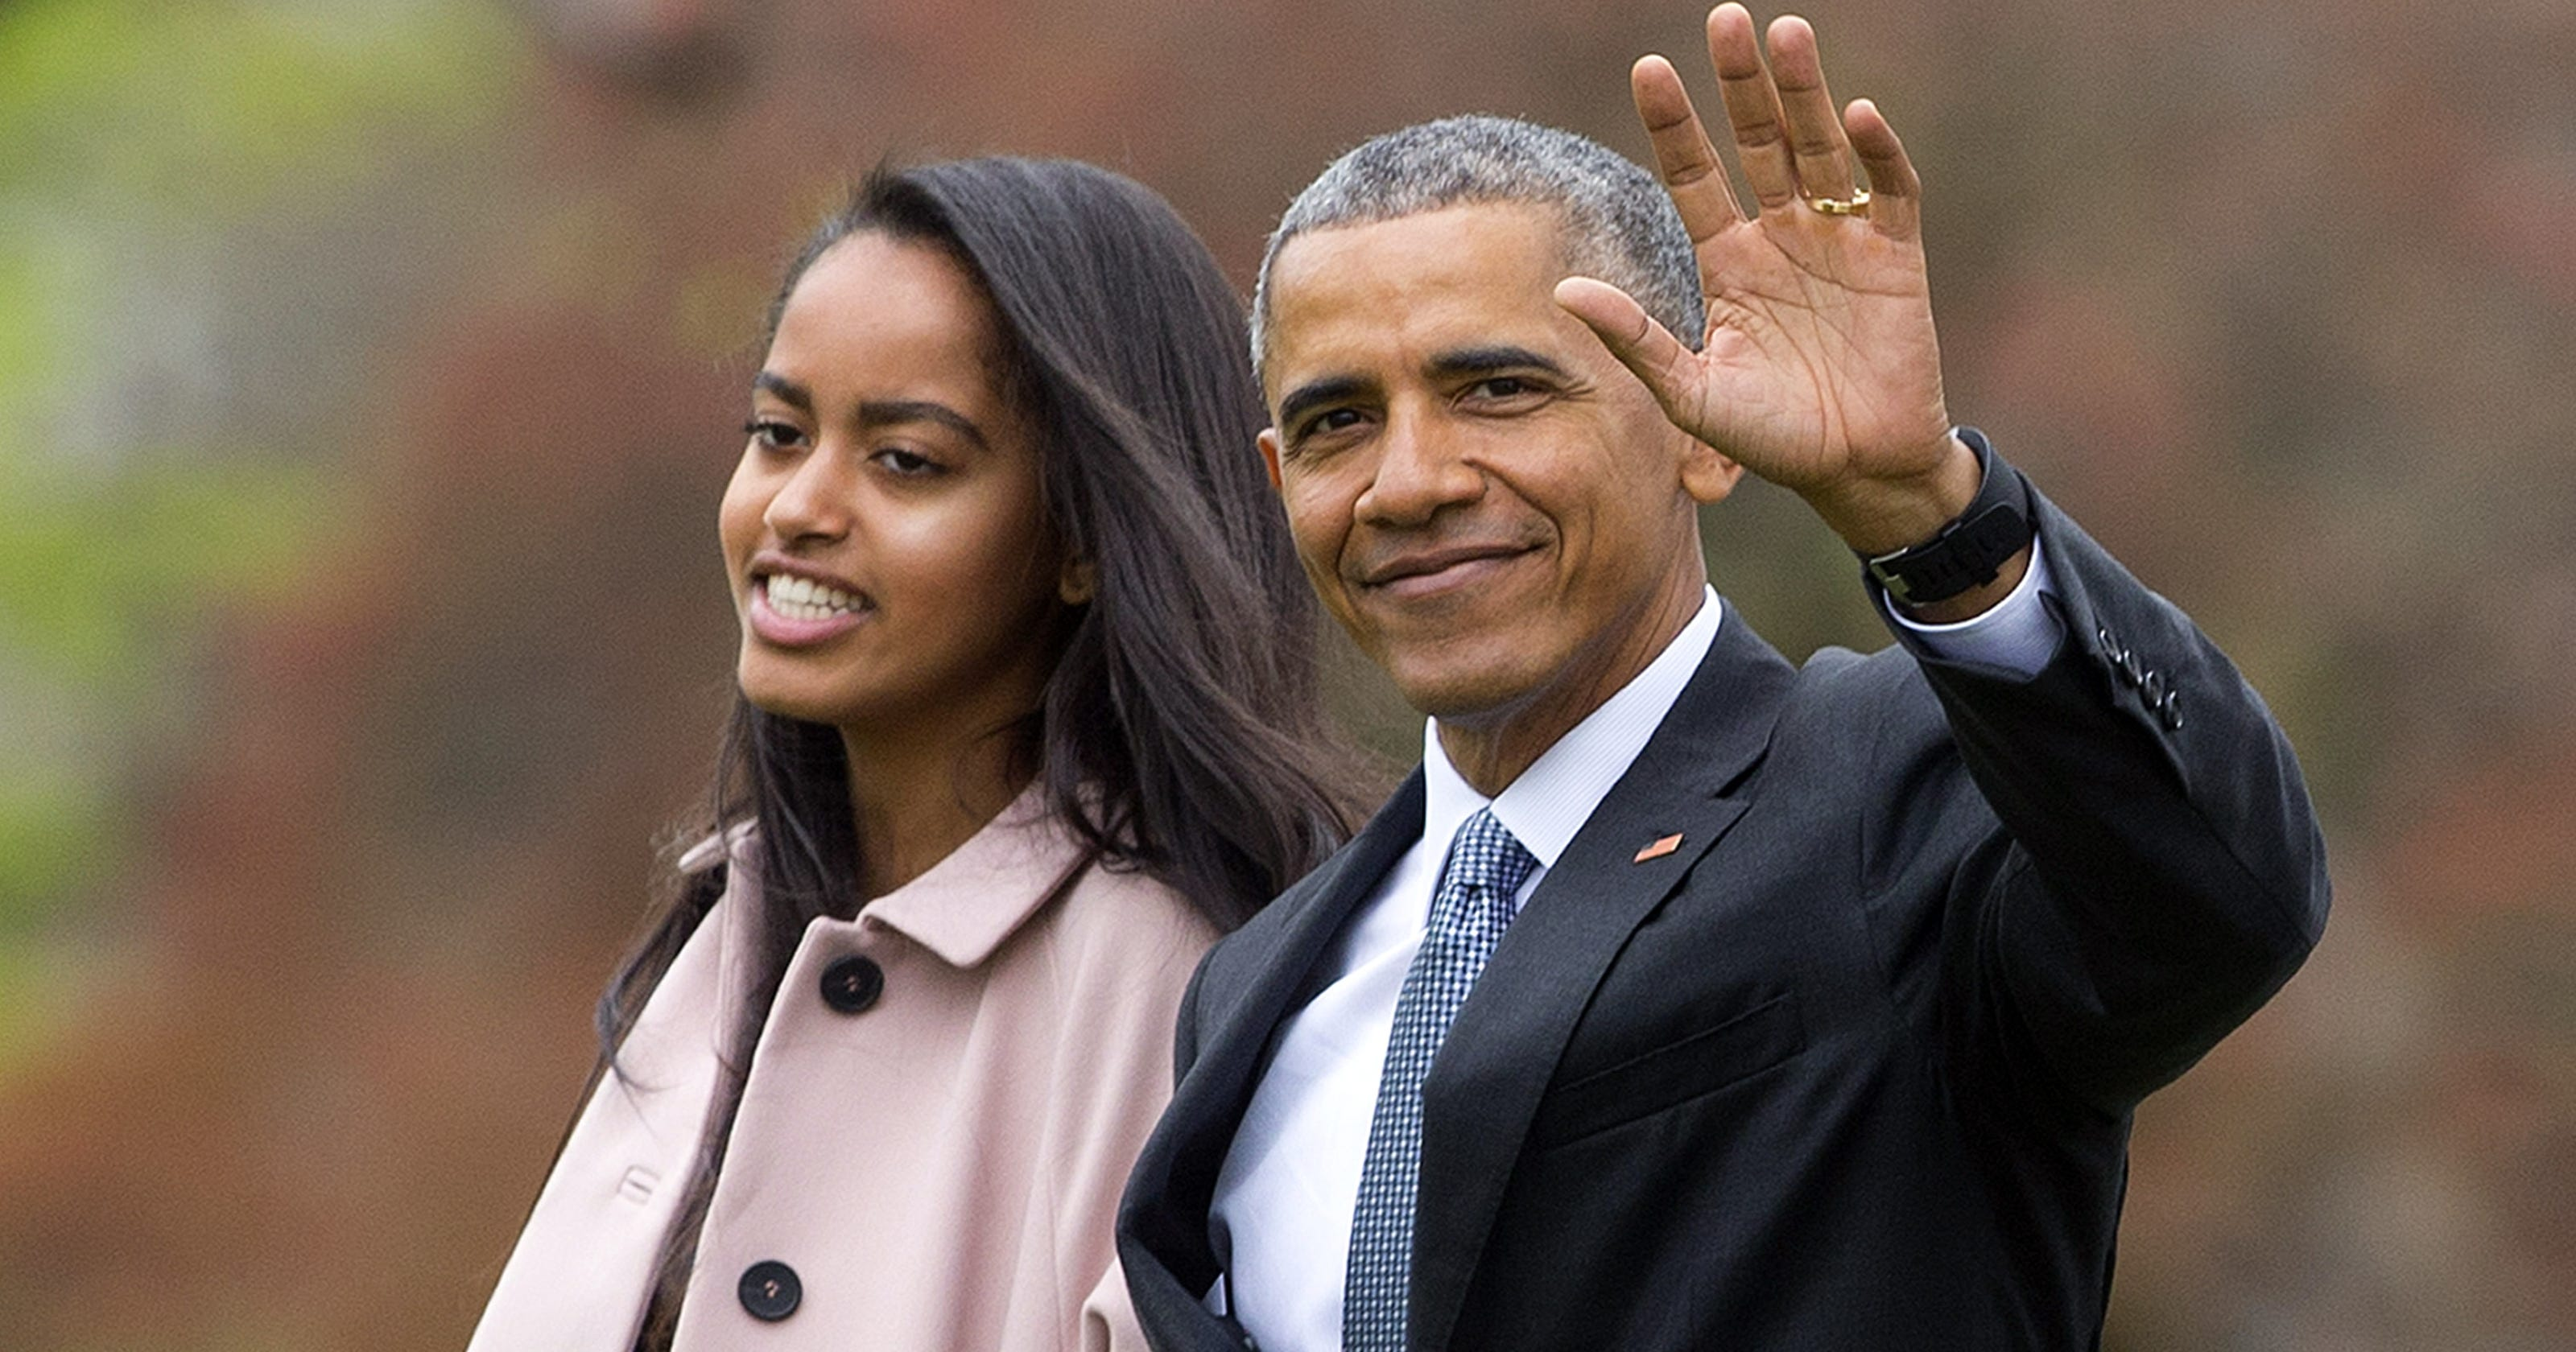 Barack Obama cried when dropping Malia Obama off at Harvard